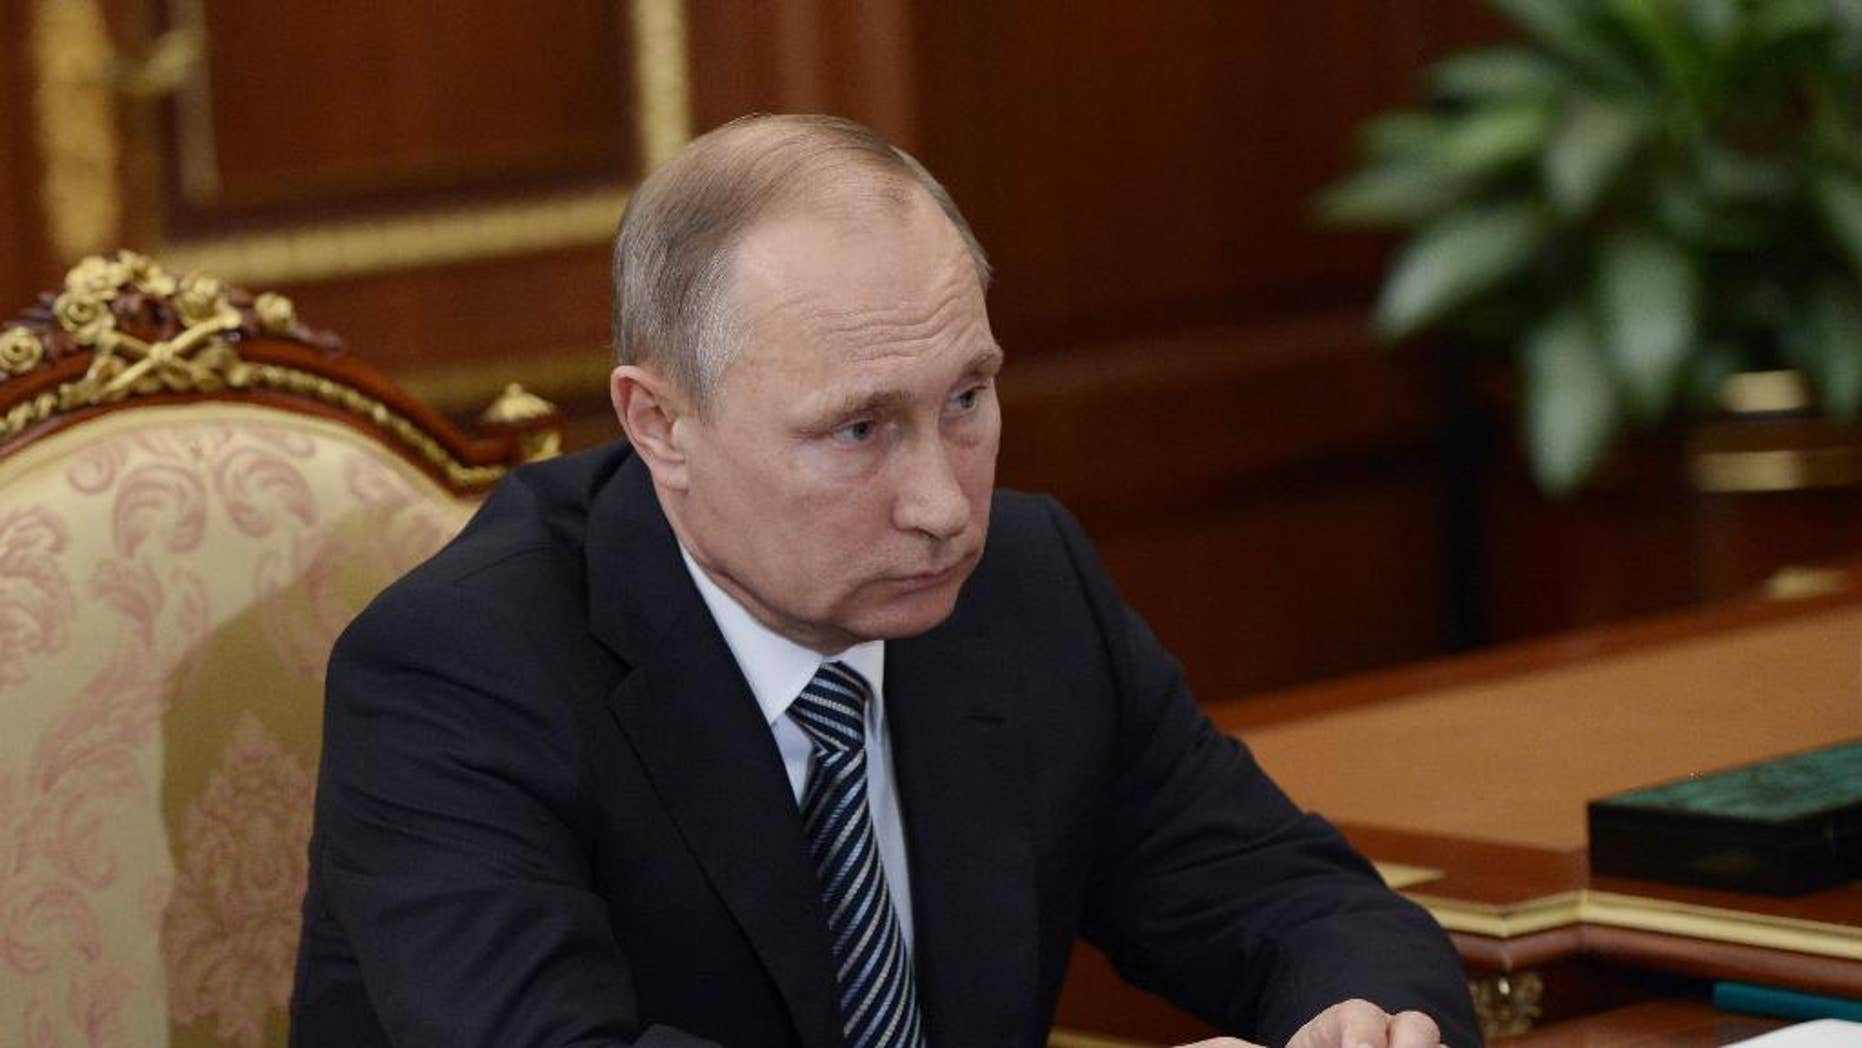 Russian President Vladimir Putin listens during a meeting with VTB CEP Andrei Kostin in Moscow's Kremlin on Tuesday, Sept. 27, 2016. The meeting focused on the current operations of the state-controlled VTB, Russia's second-largest bank. (Alexei Nikolsky/Sputnik, Kremlin Pool Photo via AP)